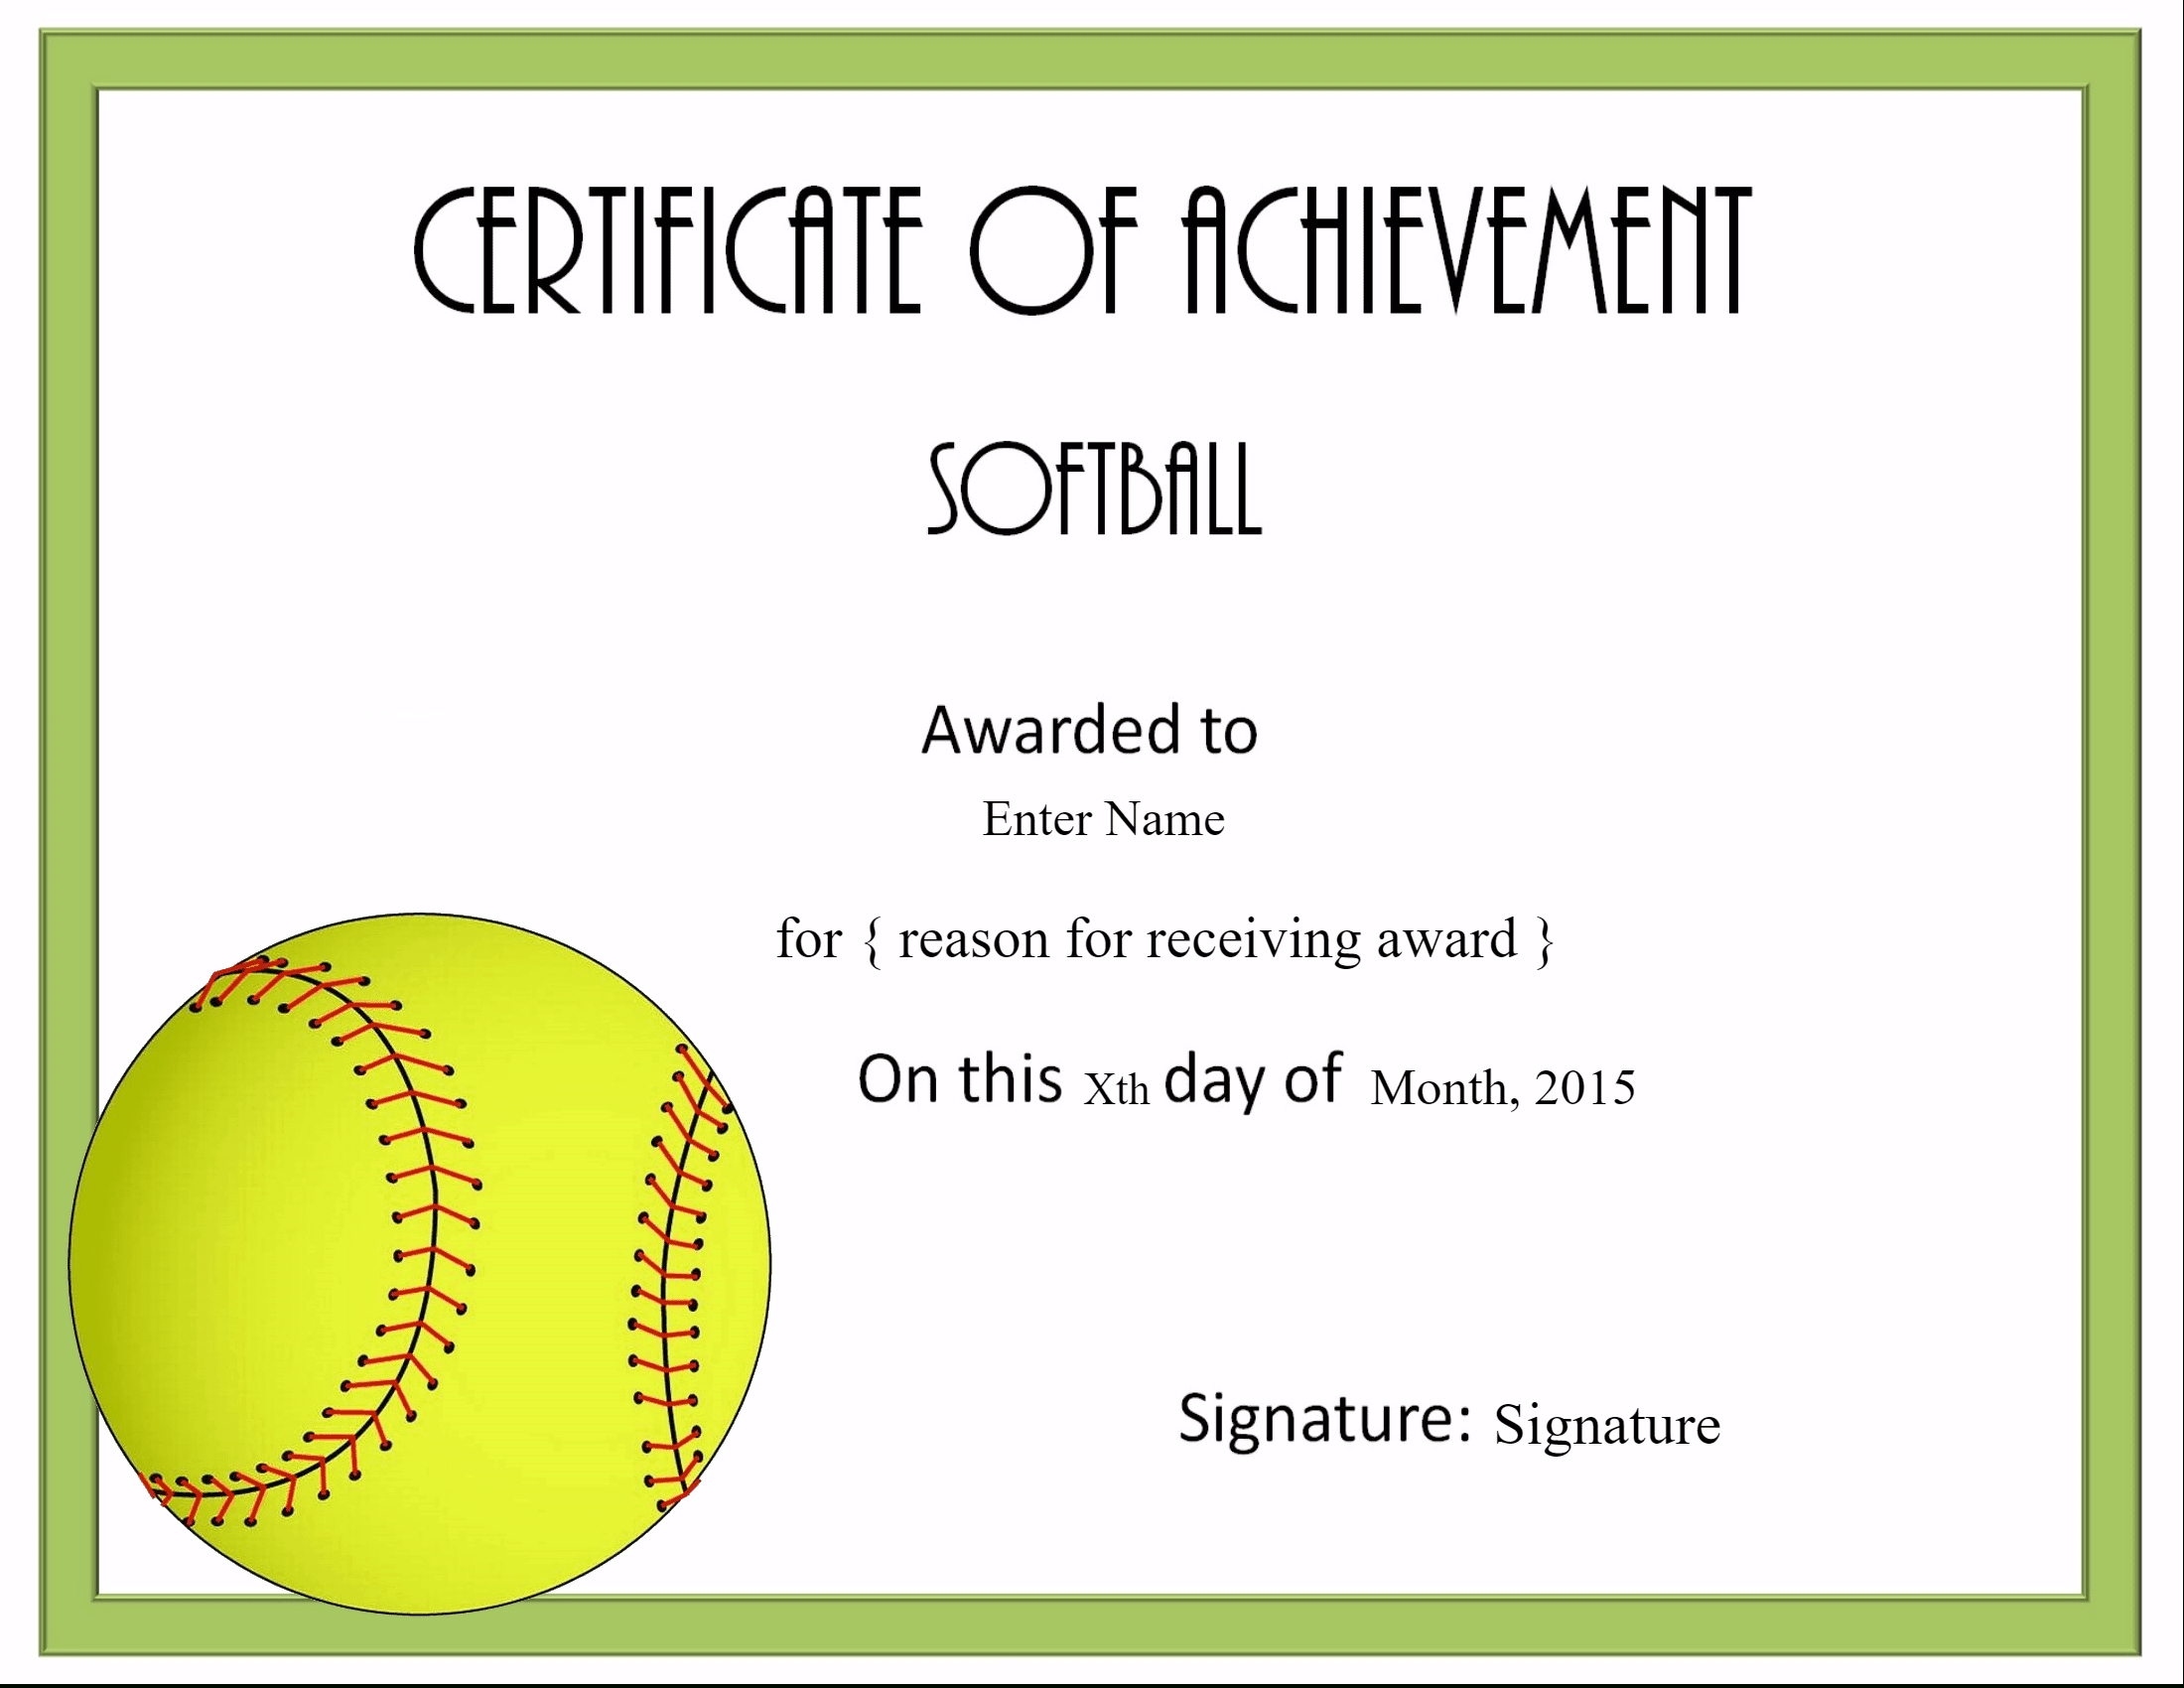 Free Softball Certificate Templates - Customize Online For Free Softball Certificate Templates